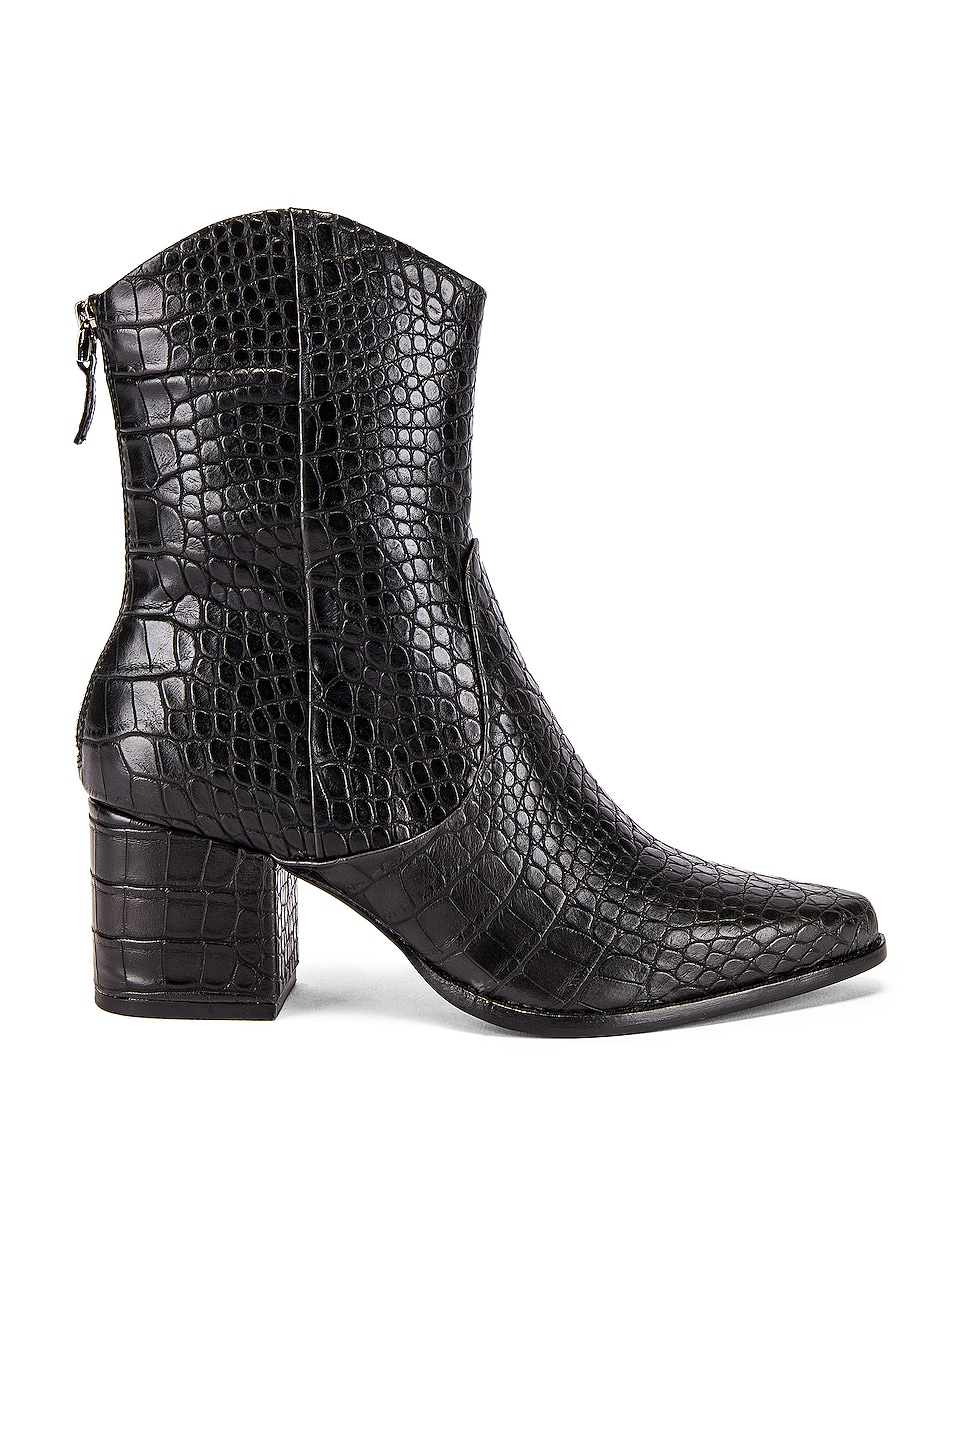 LPA Ludo Bootie in Black